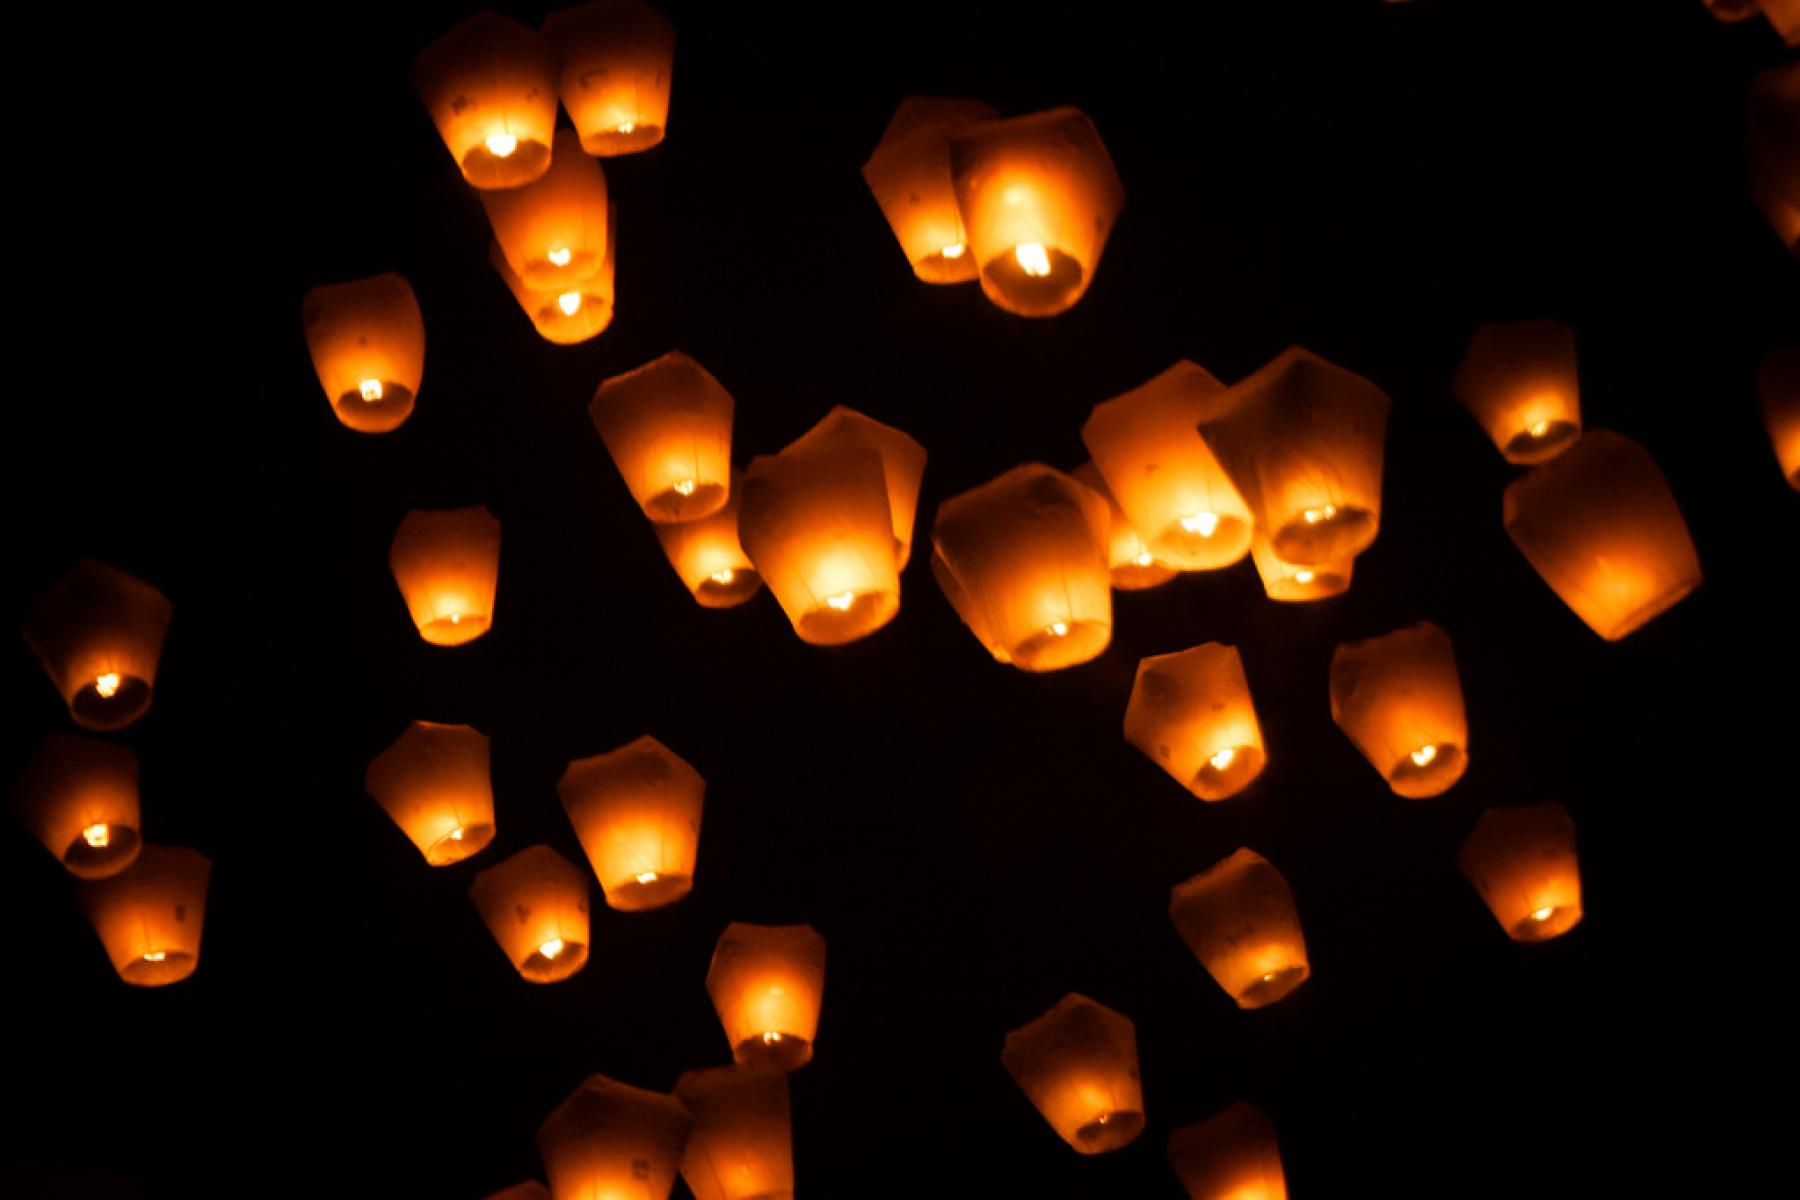 Let's fly sky lanterns to celebrate Mid-Autumn Festival - Rerun starting at